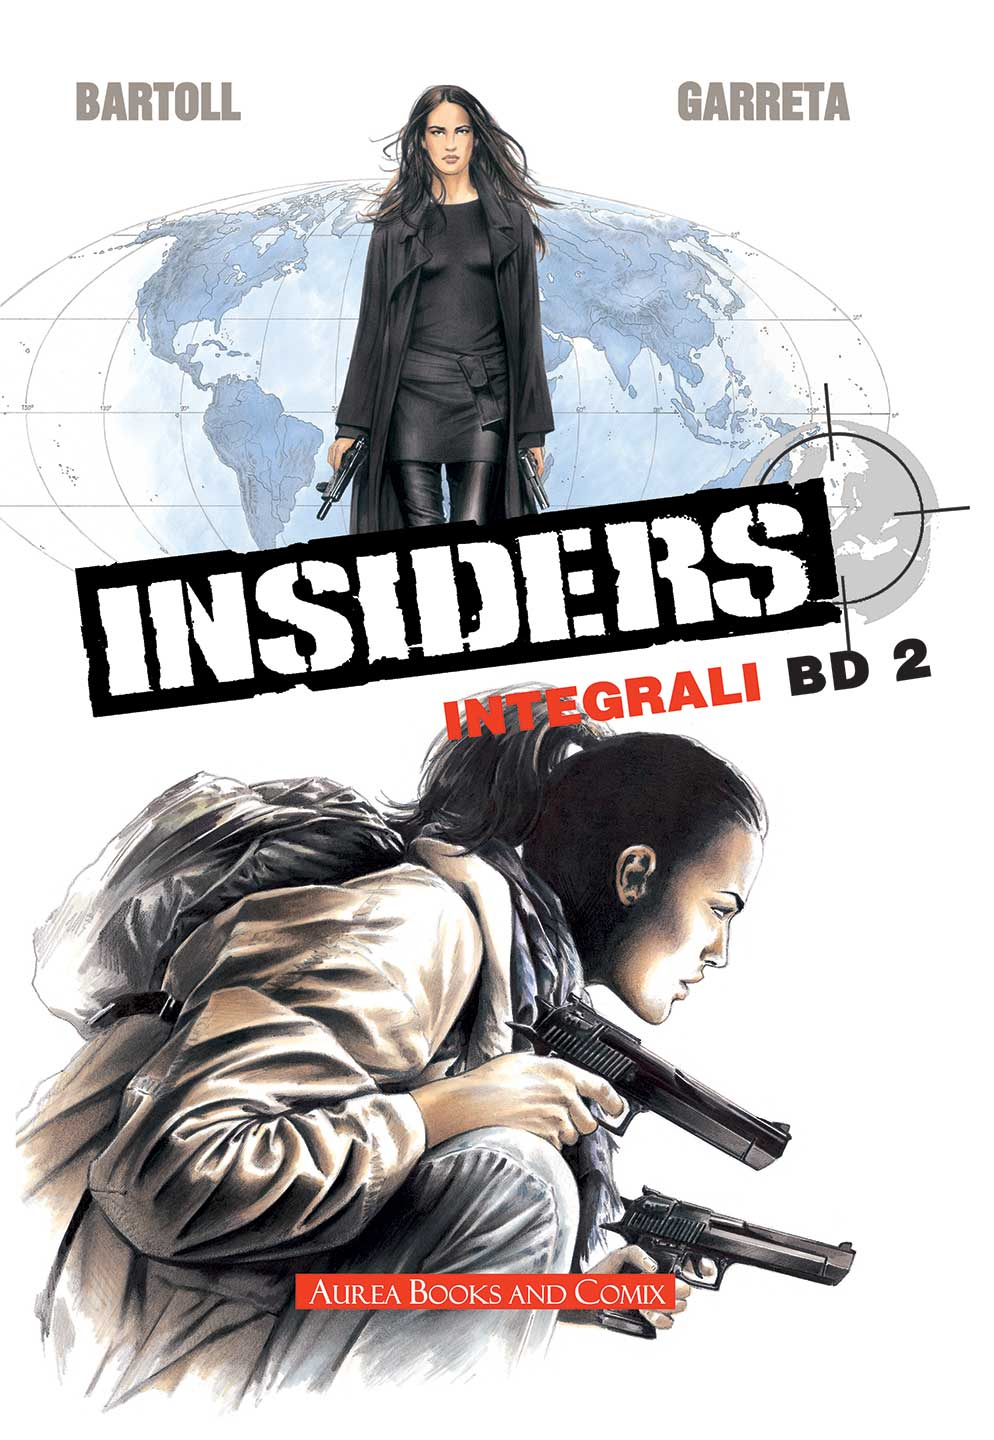 Integrali BD Insiders 2